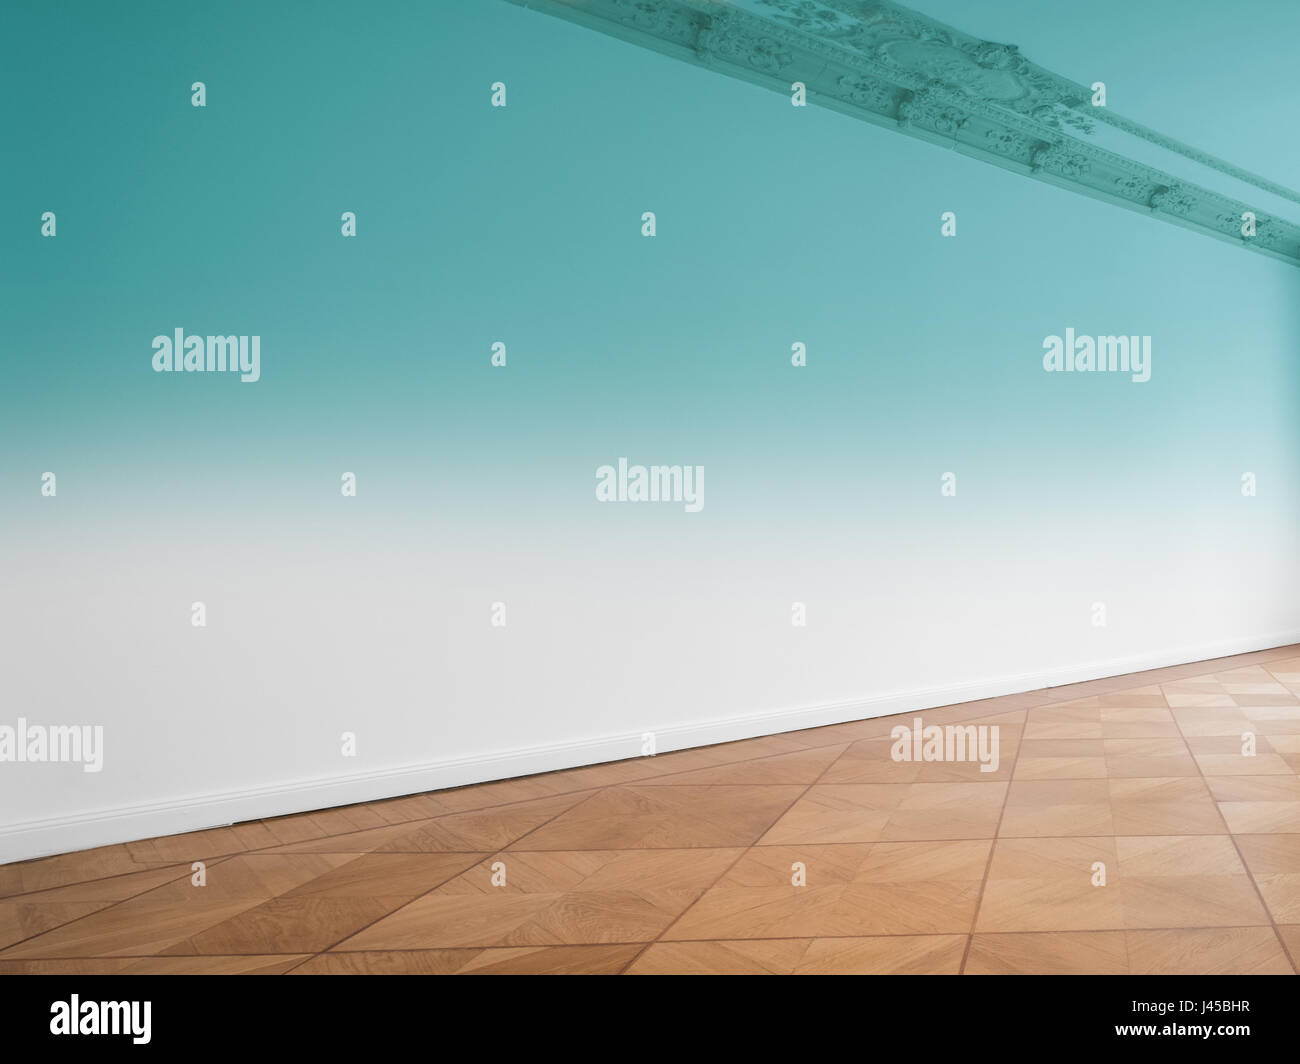 wall background in empty room with wooden floor Stock Photo